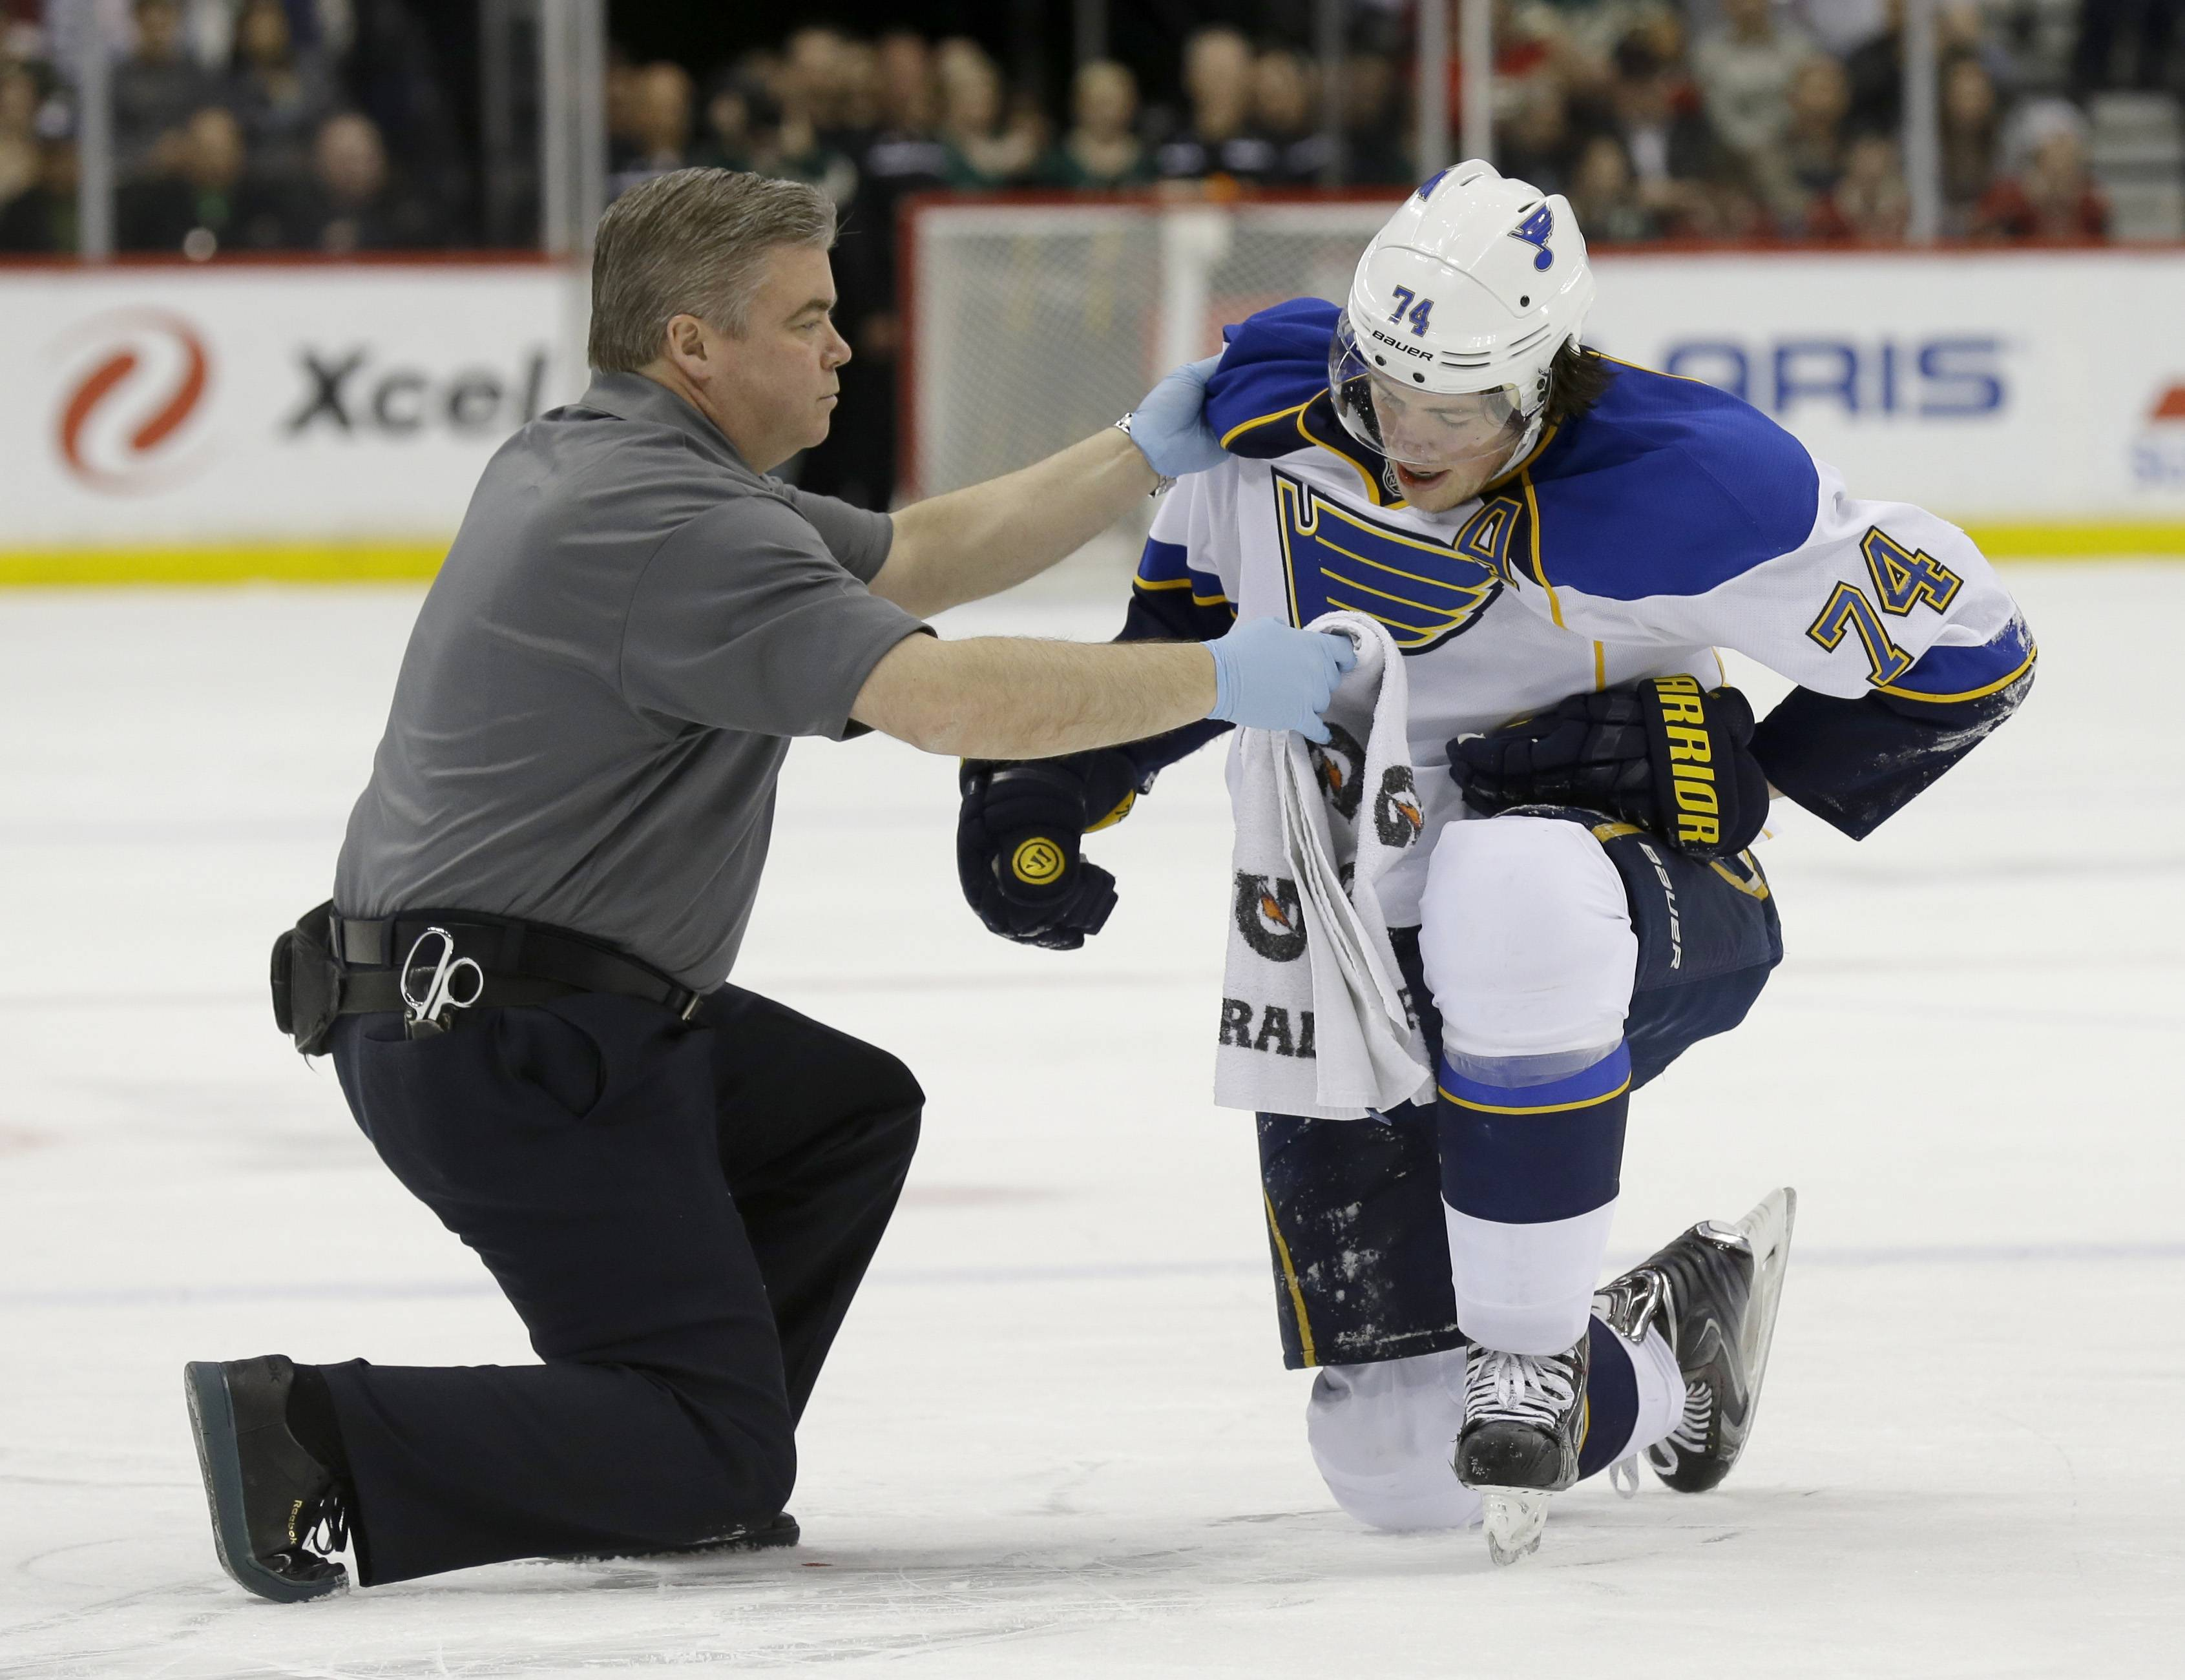 St. Louis Blues right wing T.J. Oshie (74) tries to get up with help from a trainer but can't after being injured during the second period of an NHL hockey game against the Minnesota Wild in St. Paul, Minn., Thursday, April 10, 2014.